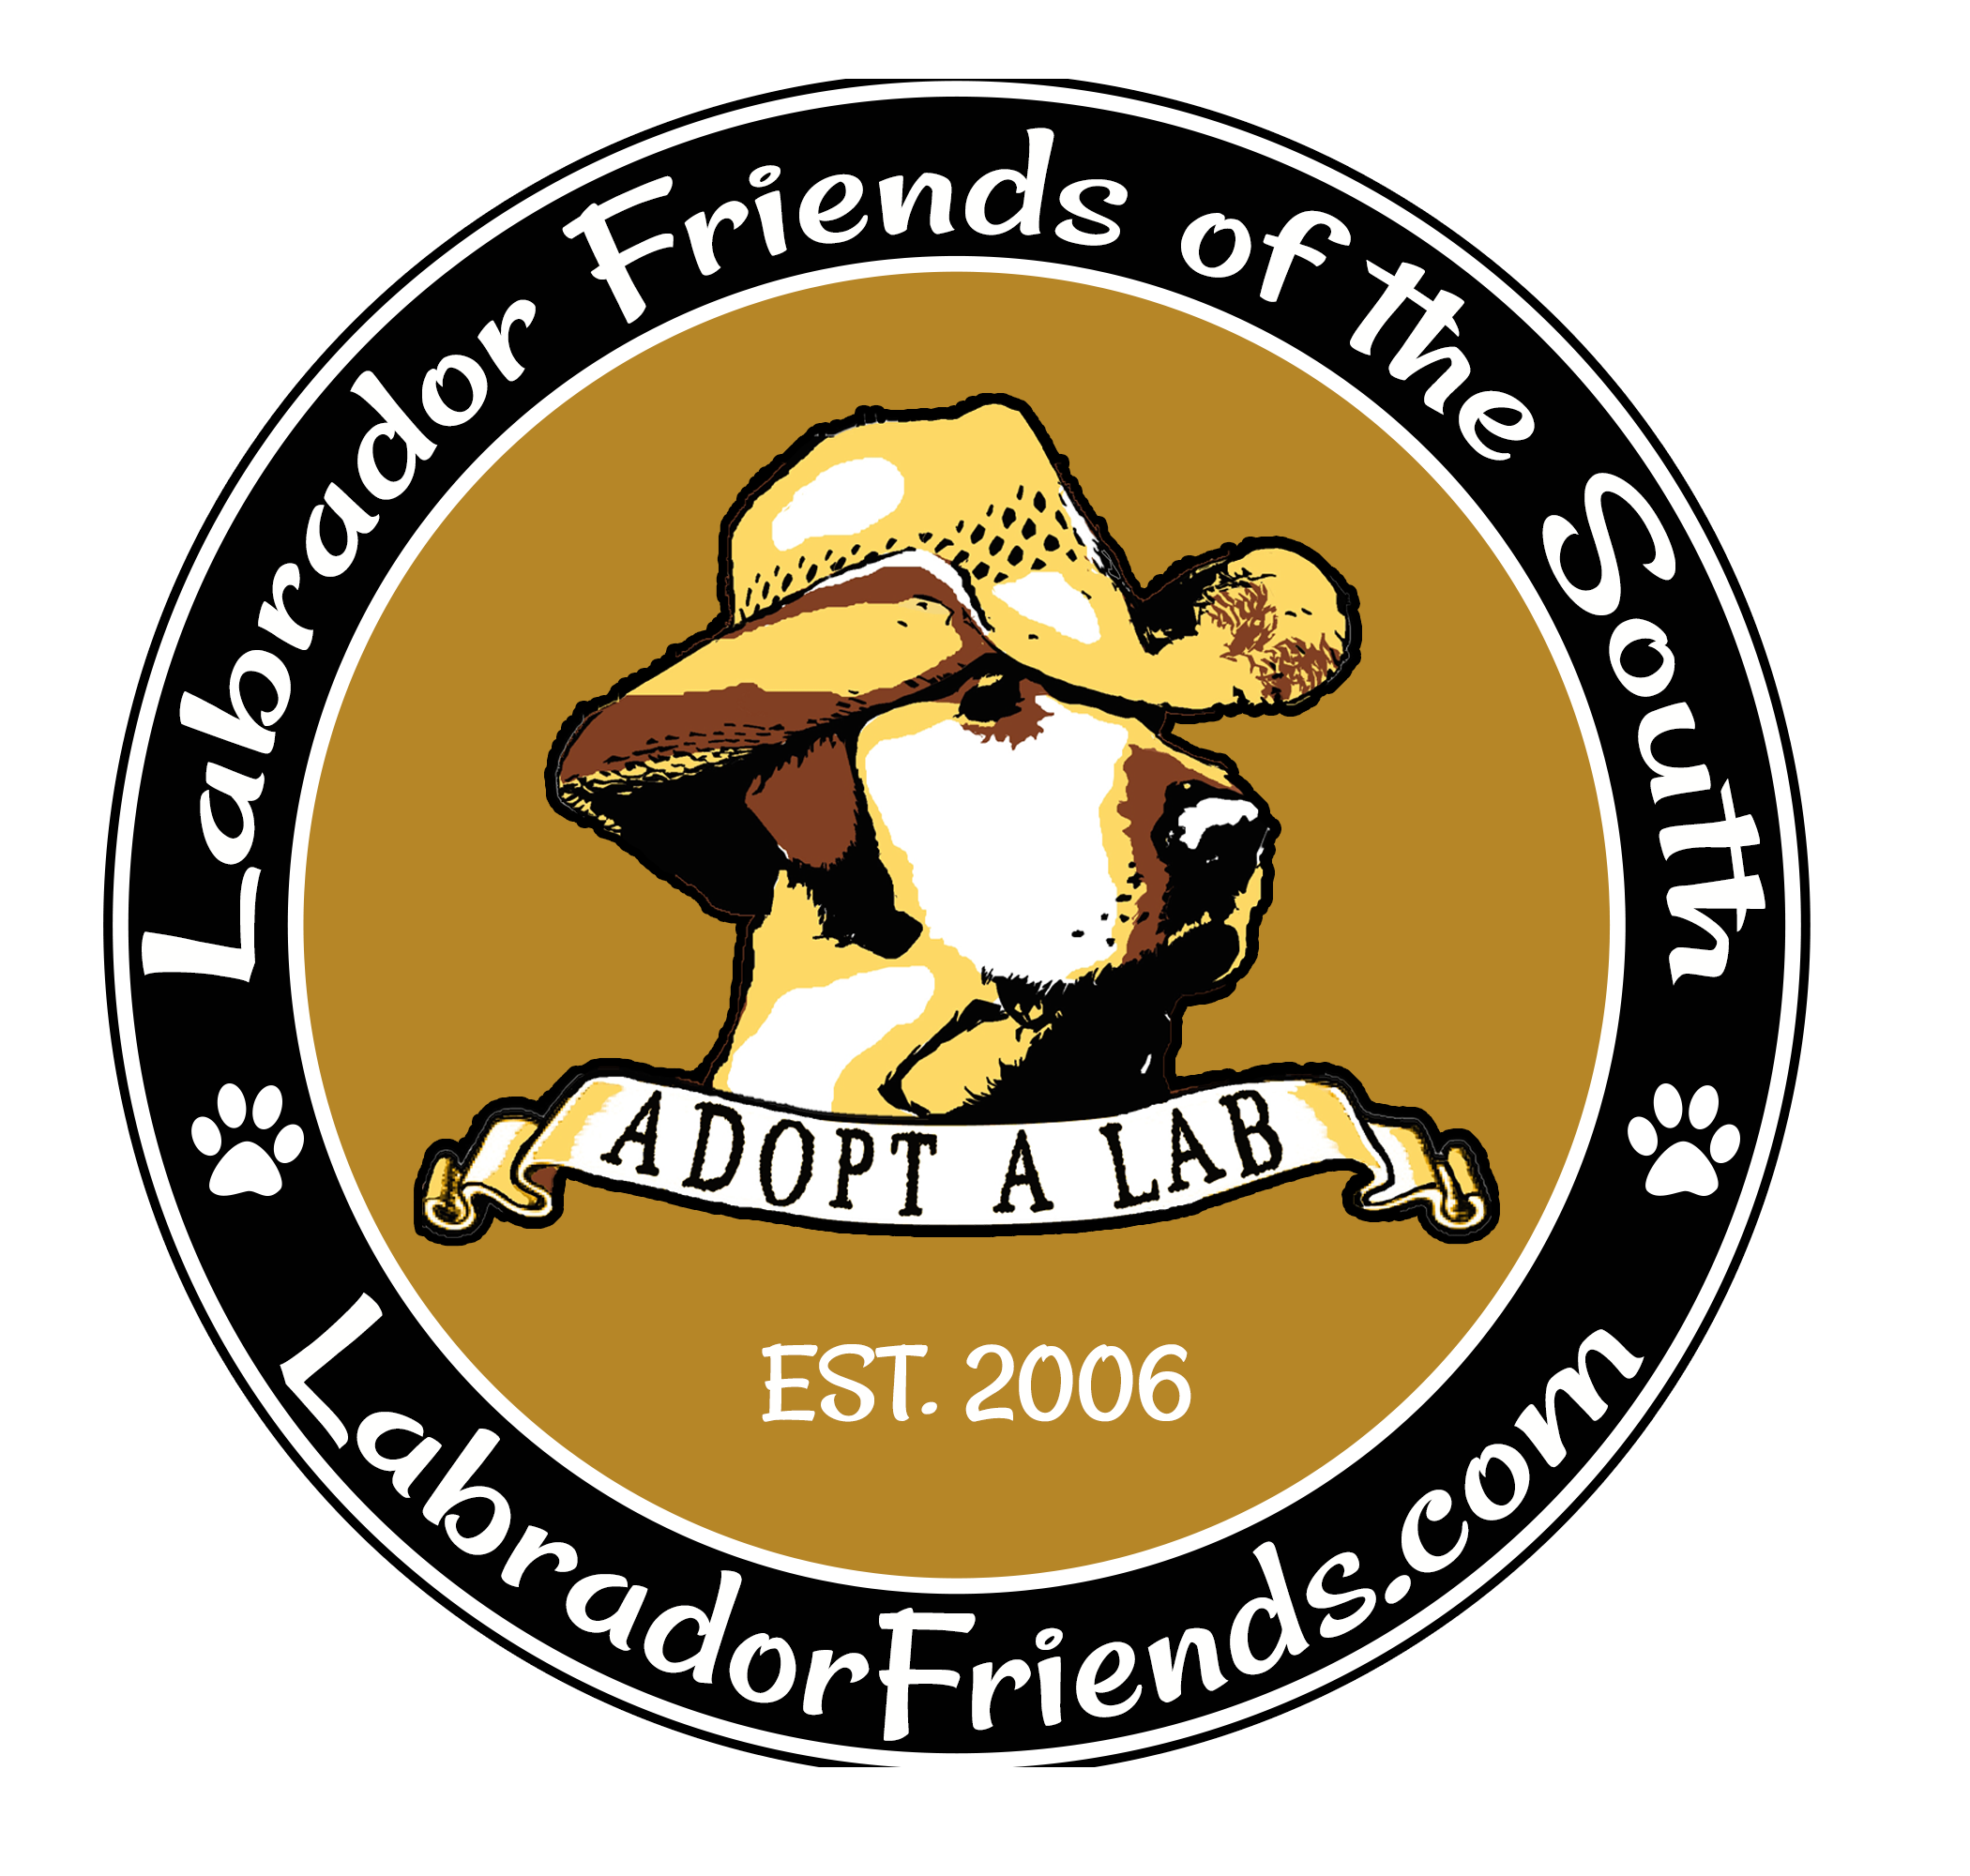 Labrador Friends of the South Logo Rebrand